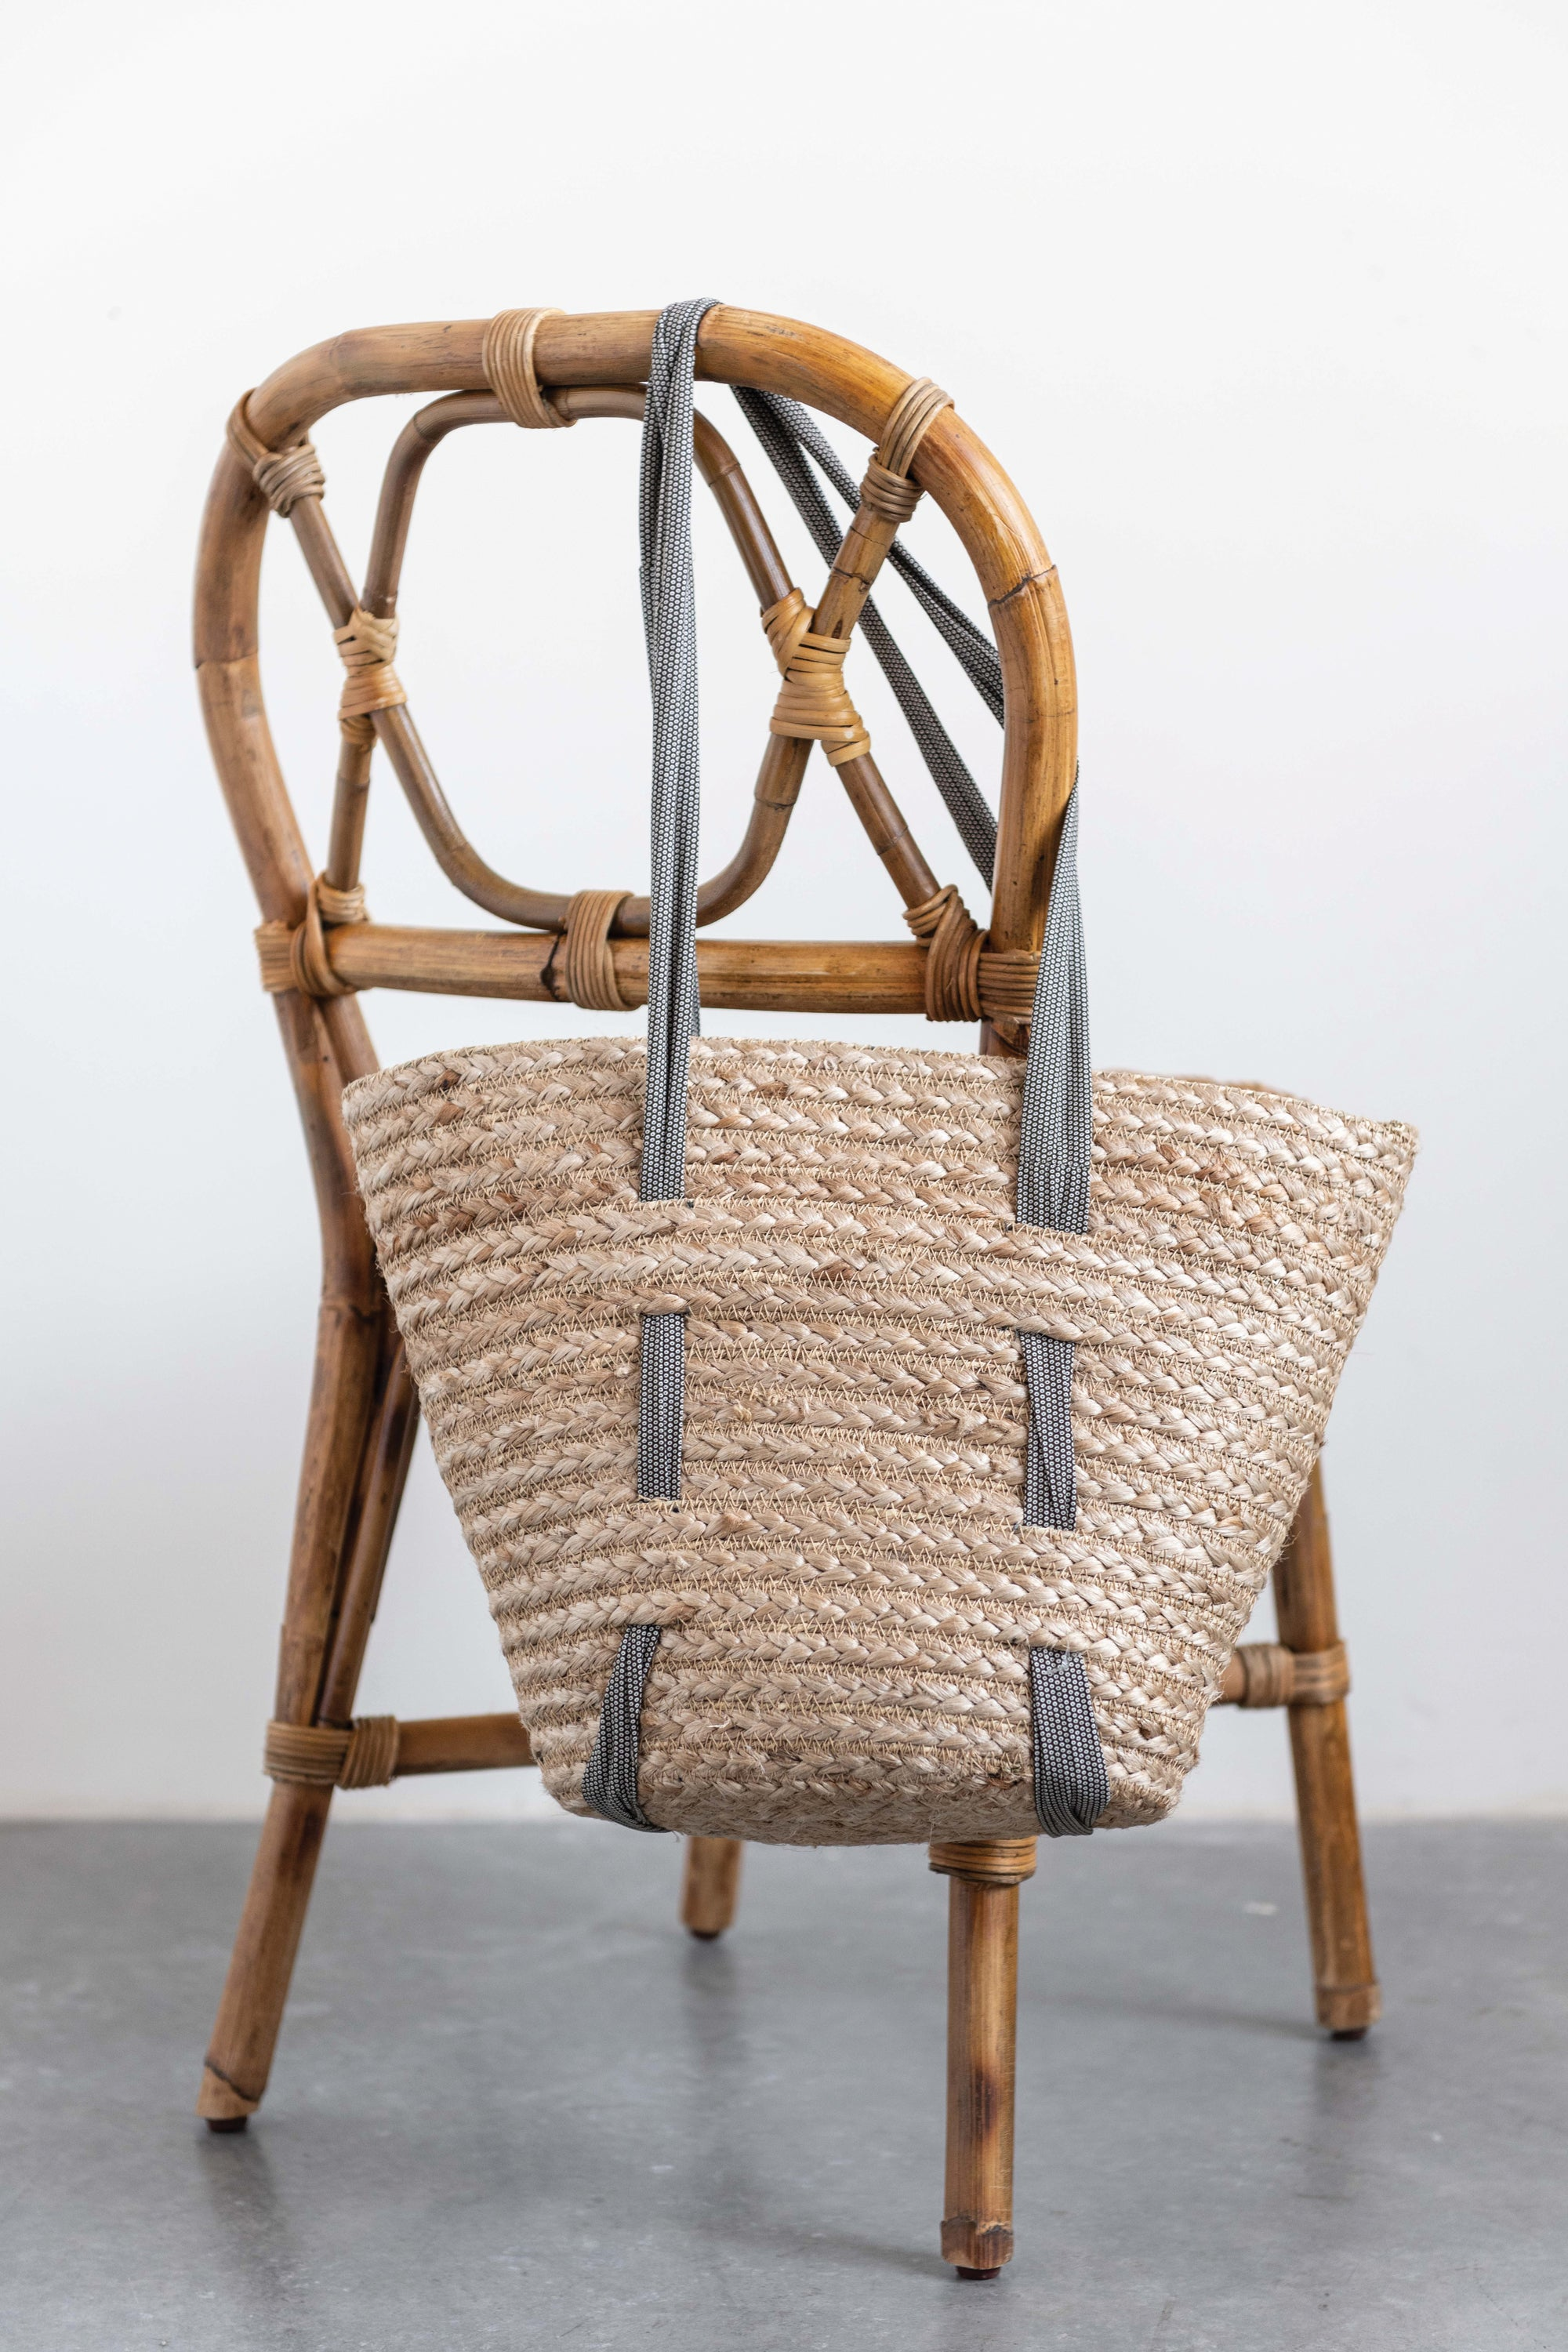 Seagrass Market Bag